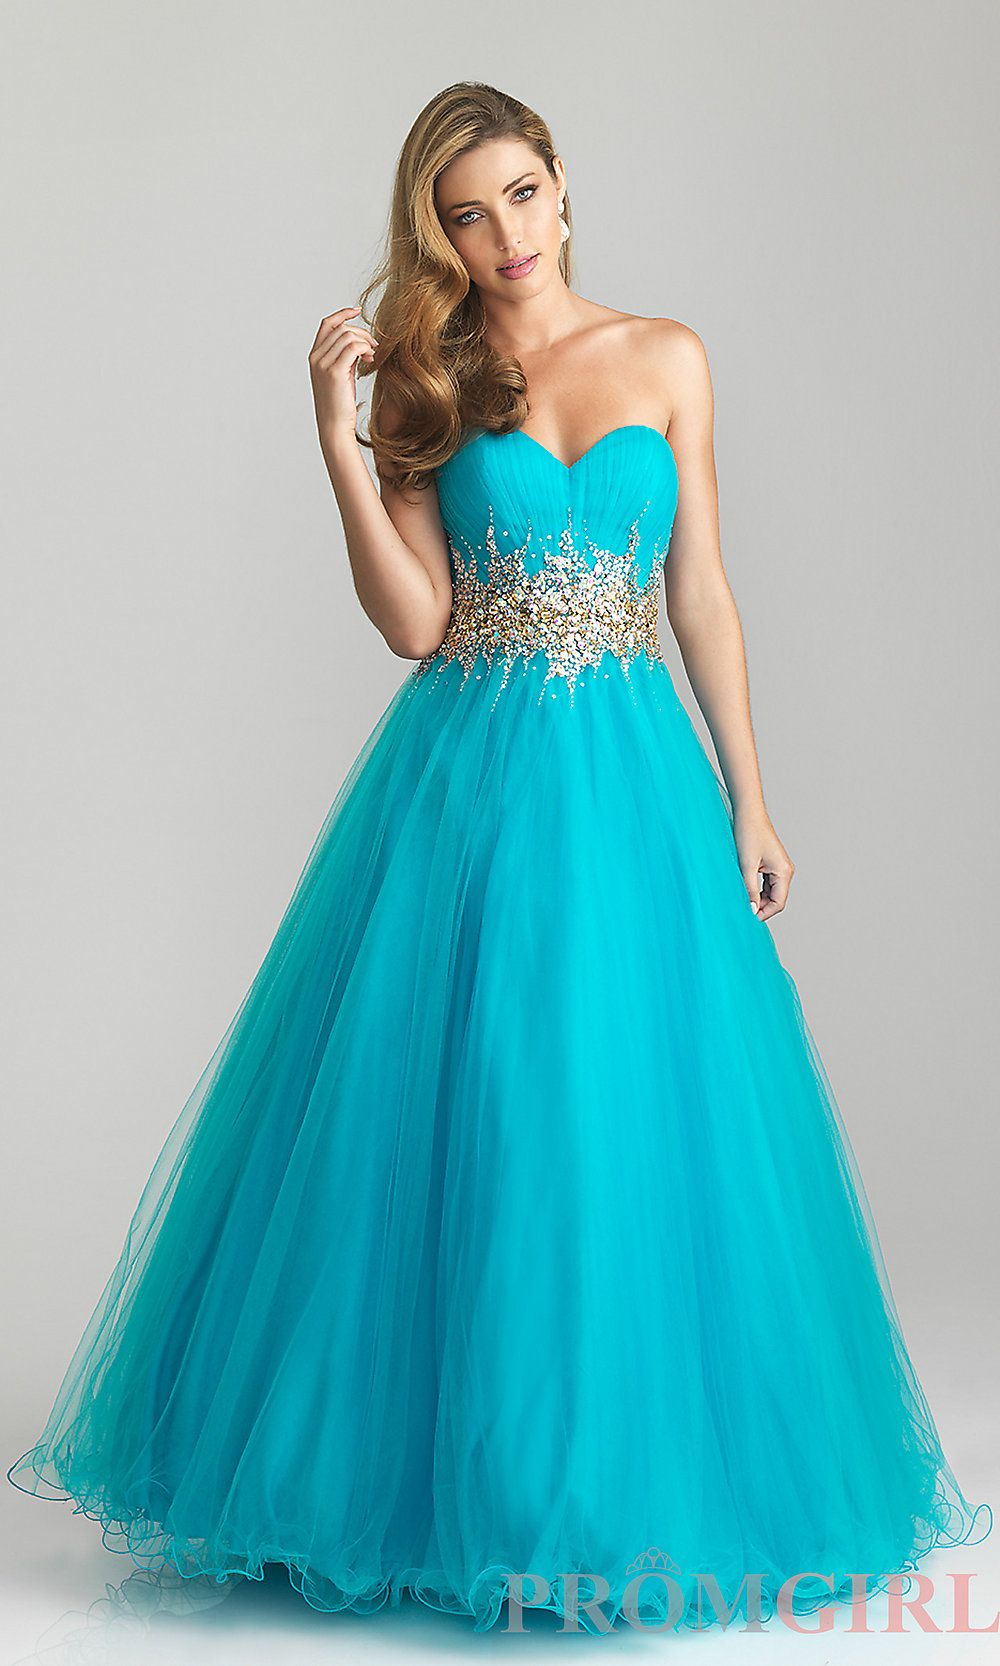 Turquoise dress...beautiful | interest | Pinterest | Turquoise, Prom ...